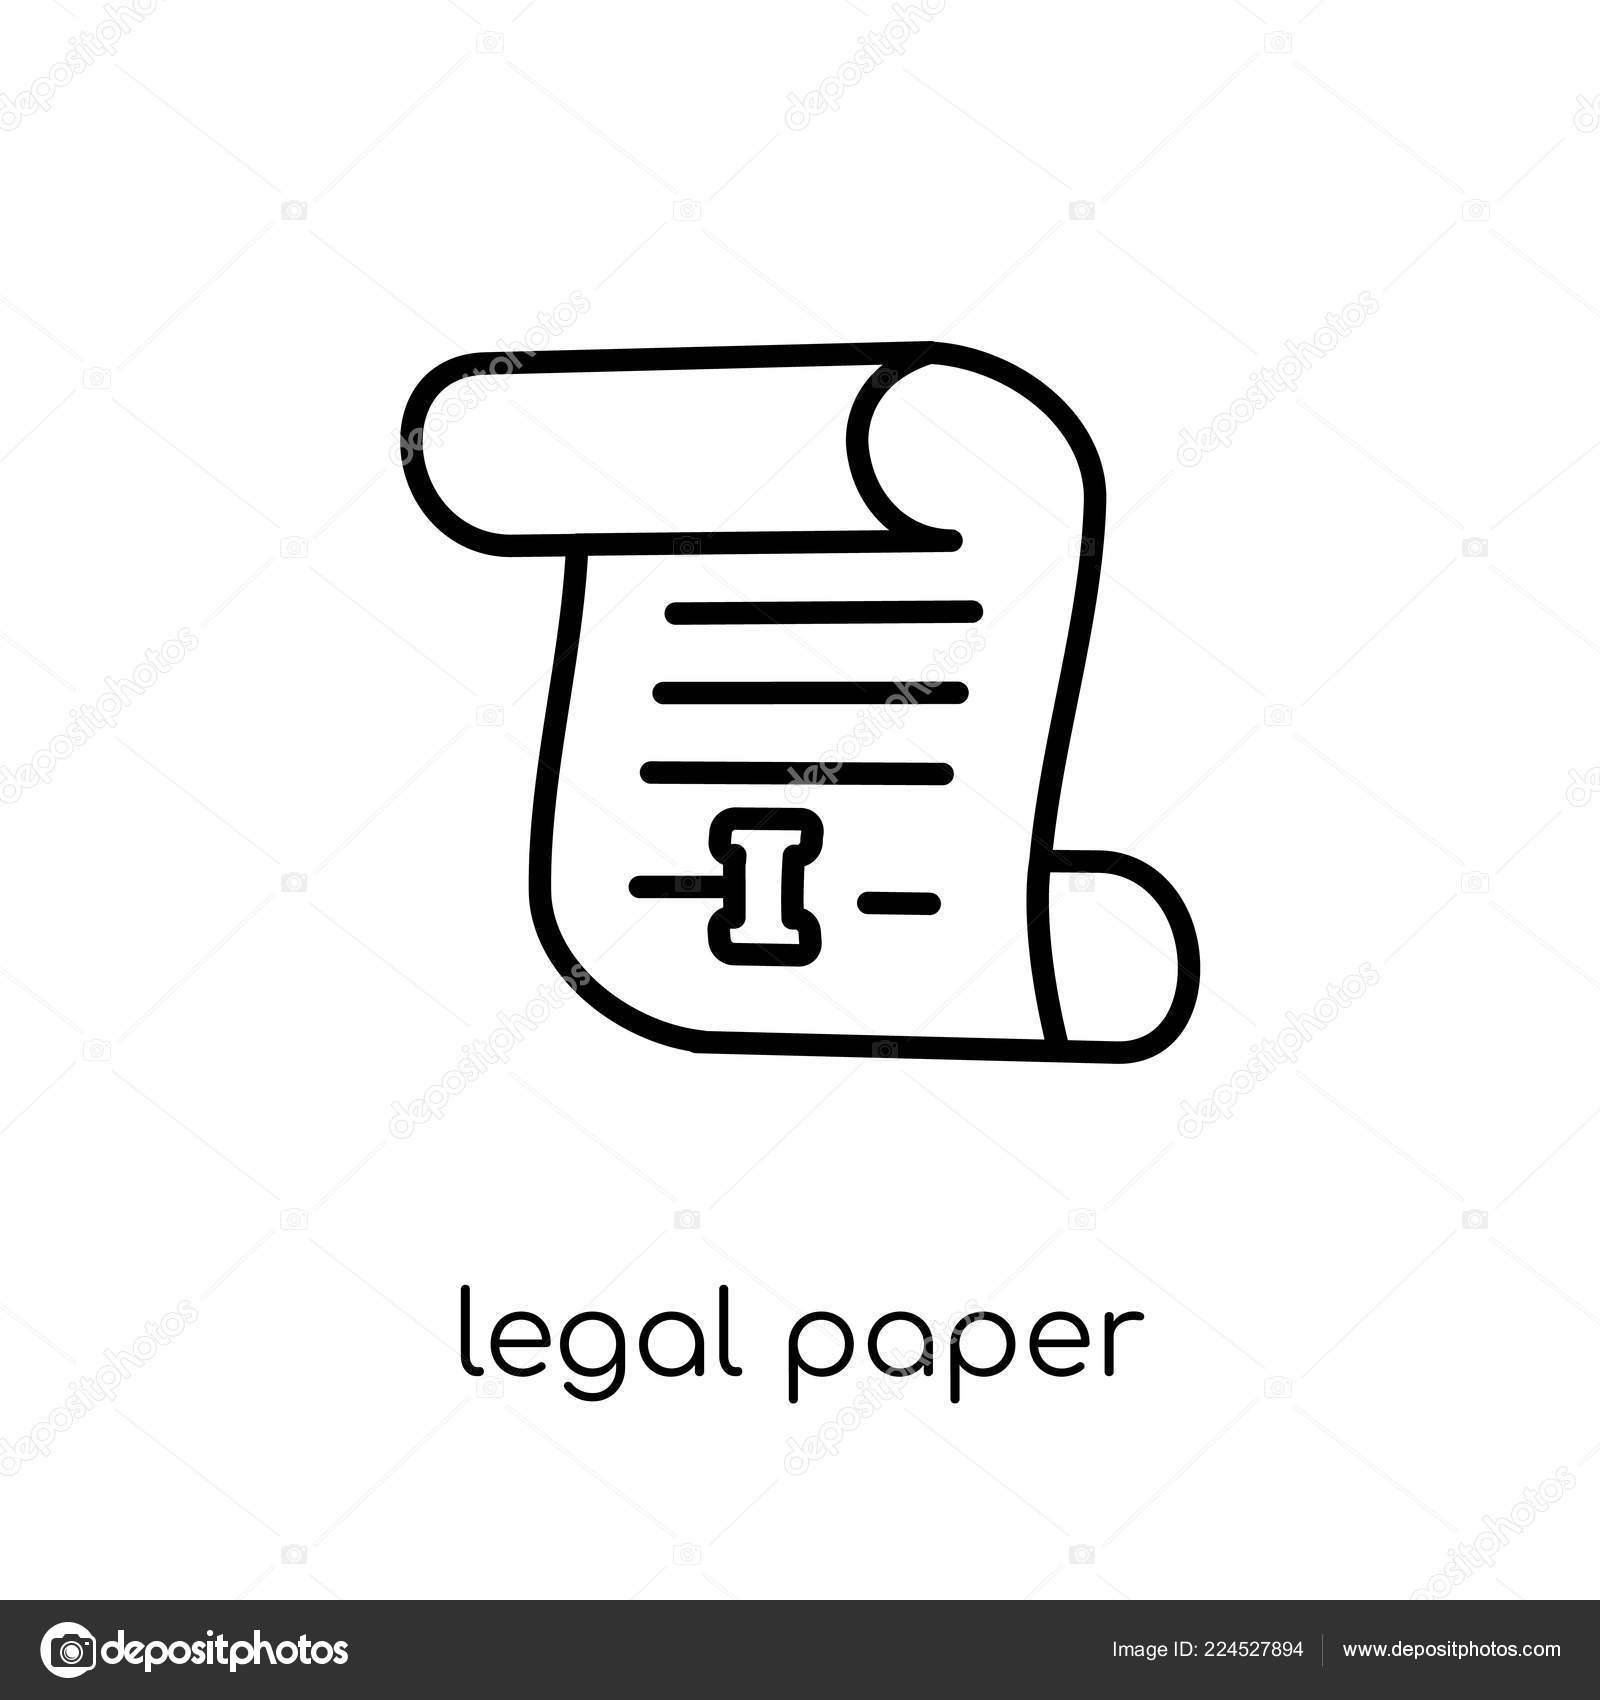 legal paper icon trendy modern flat linear vector legal paper